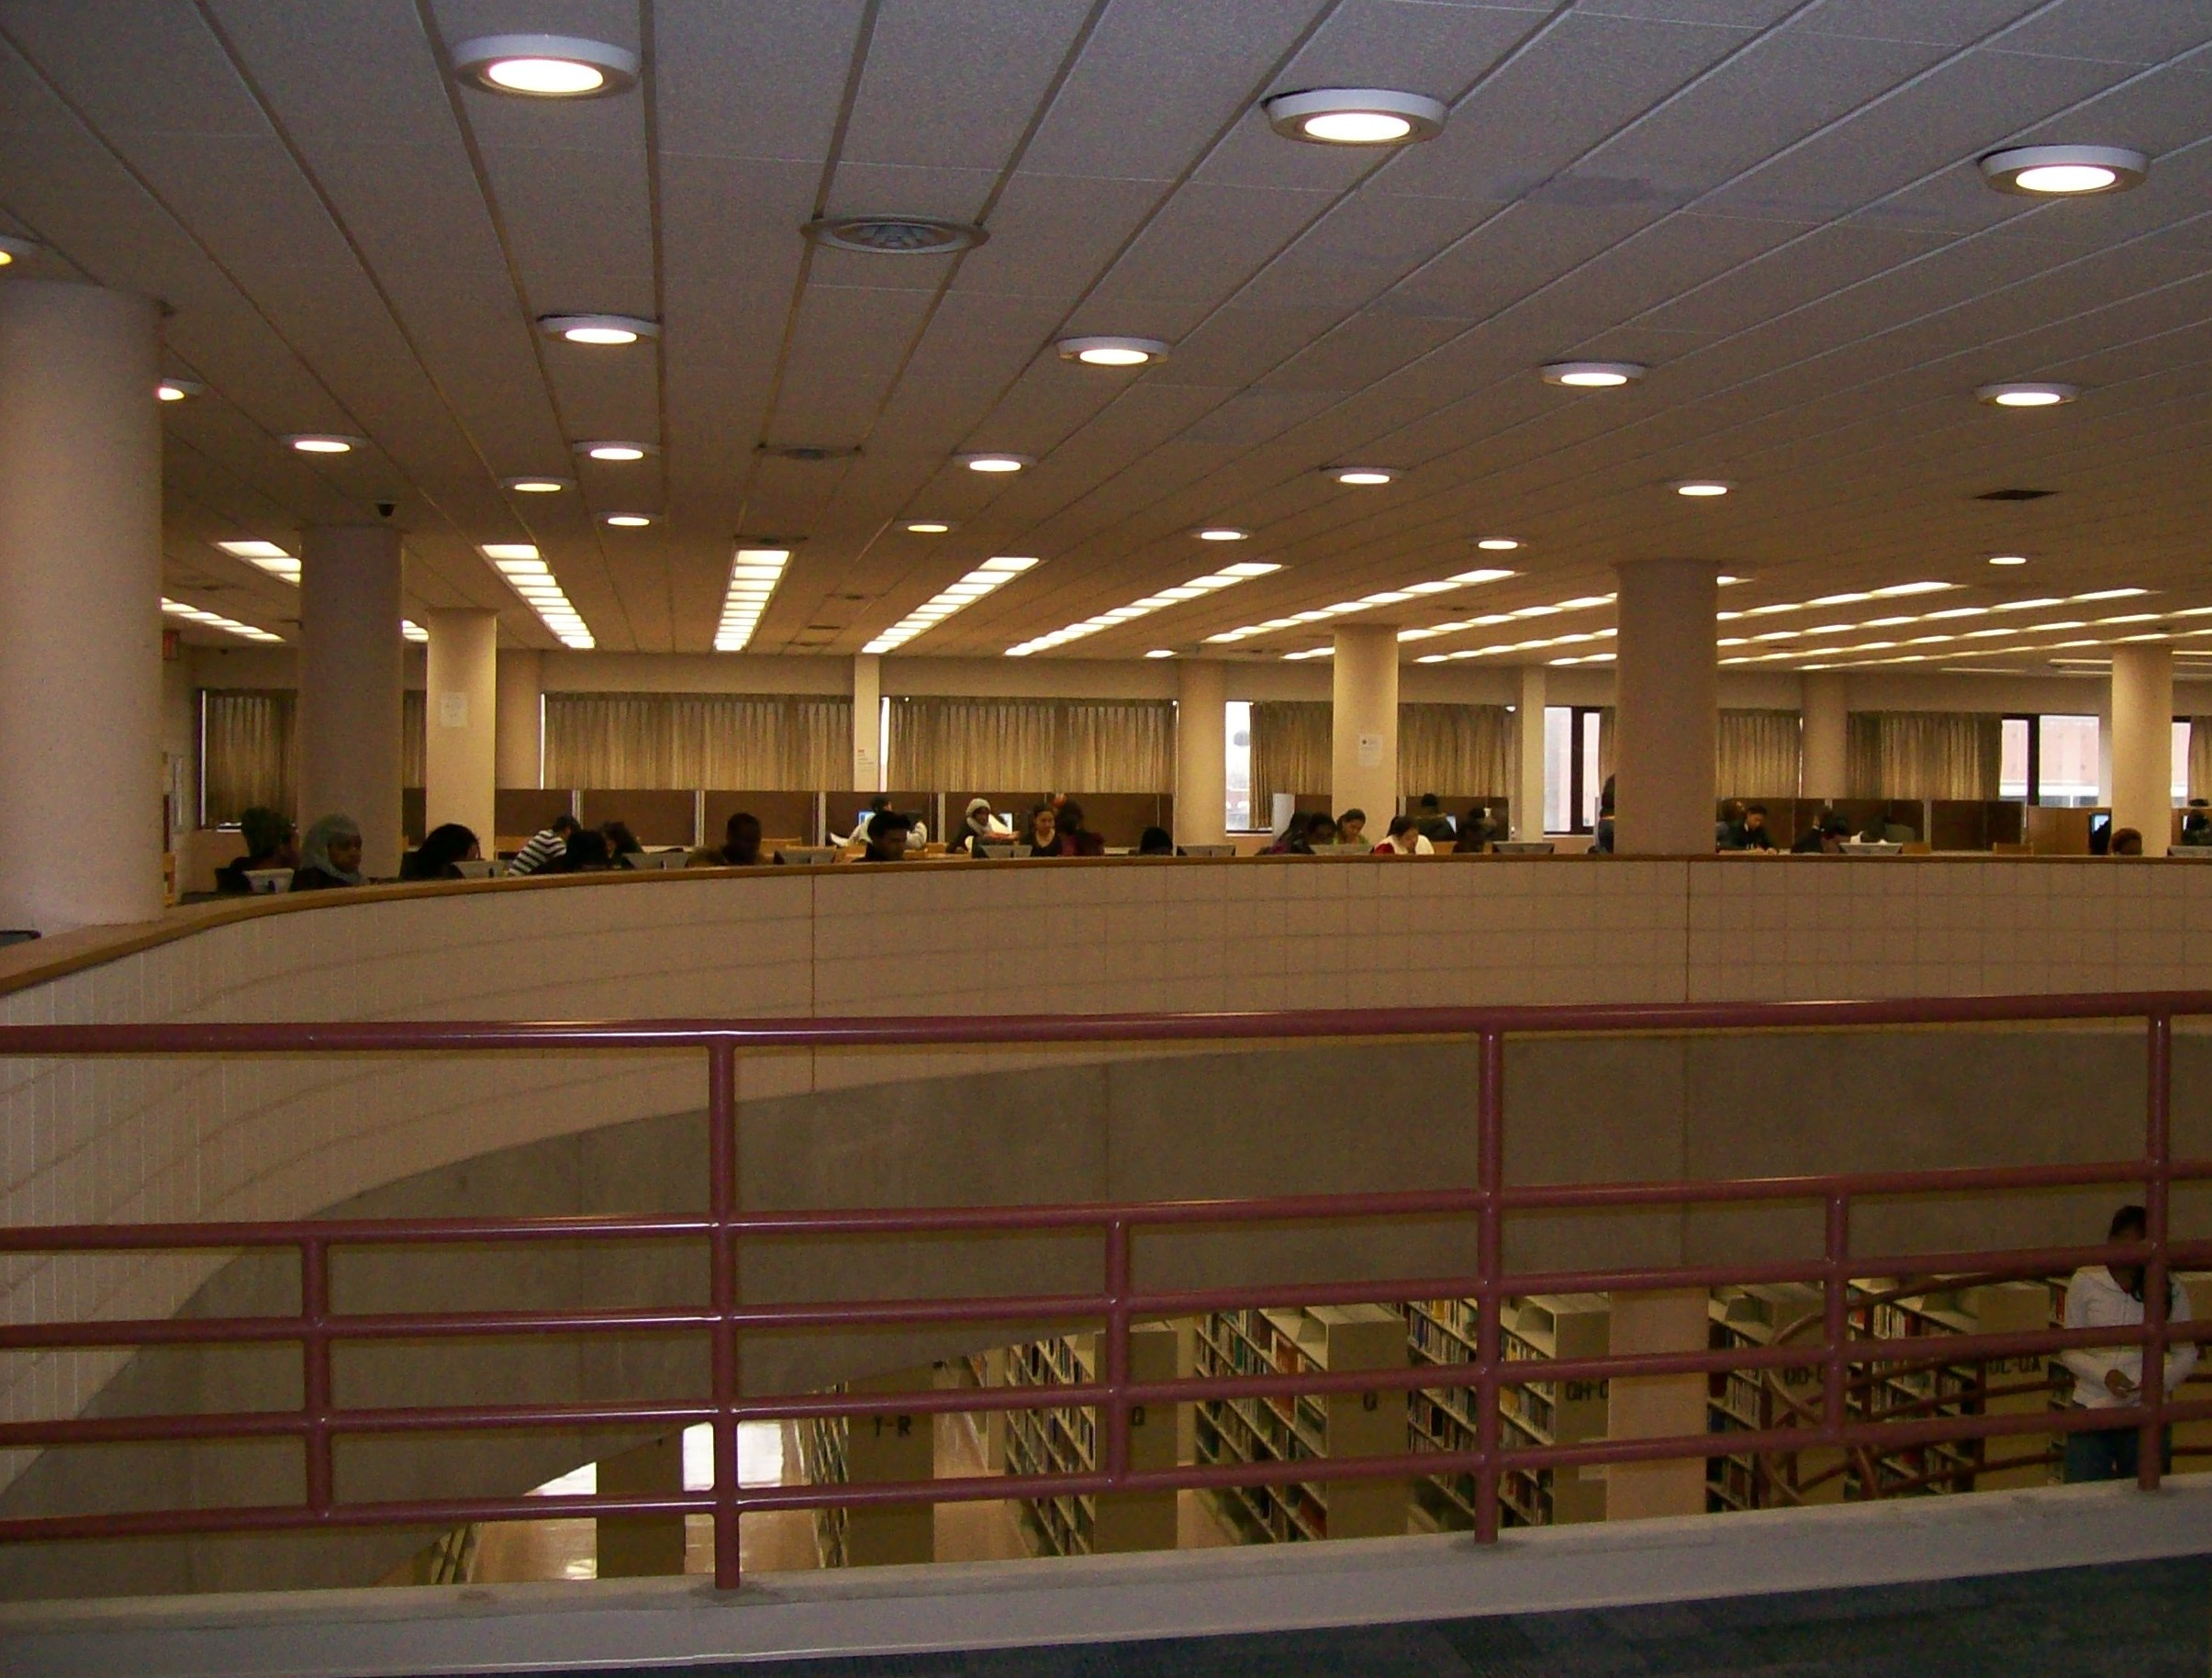 York College Library (PHOTO FROM YORK.CUNY.EDU)